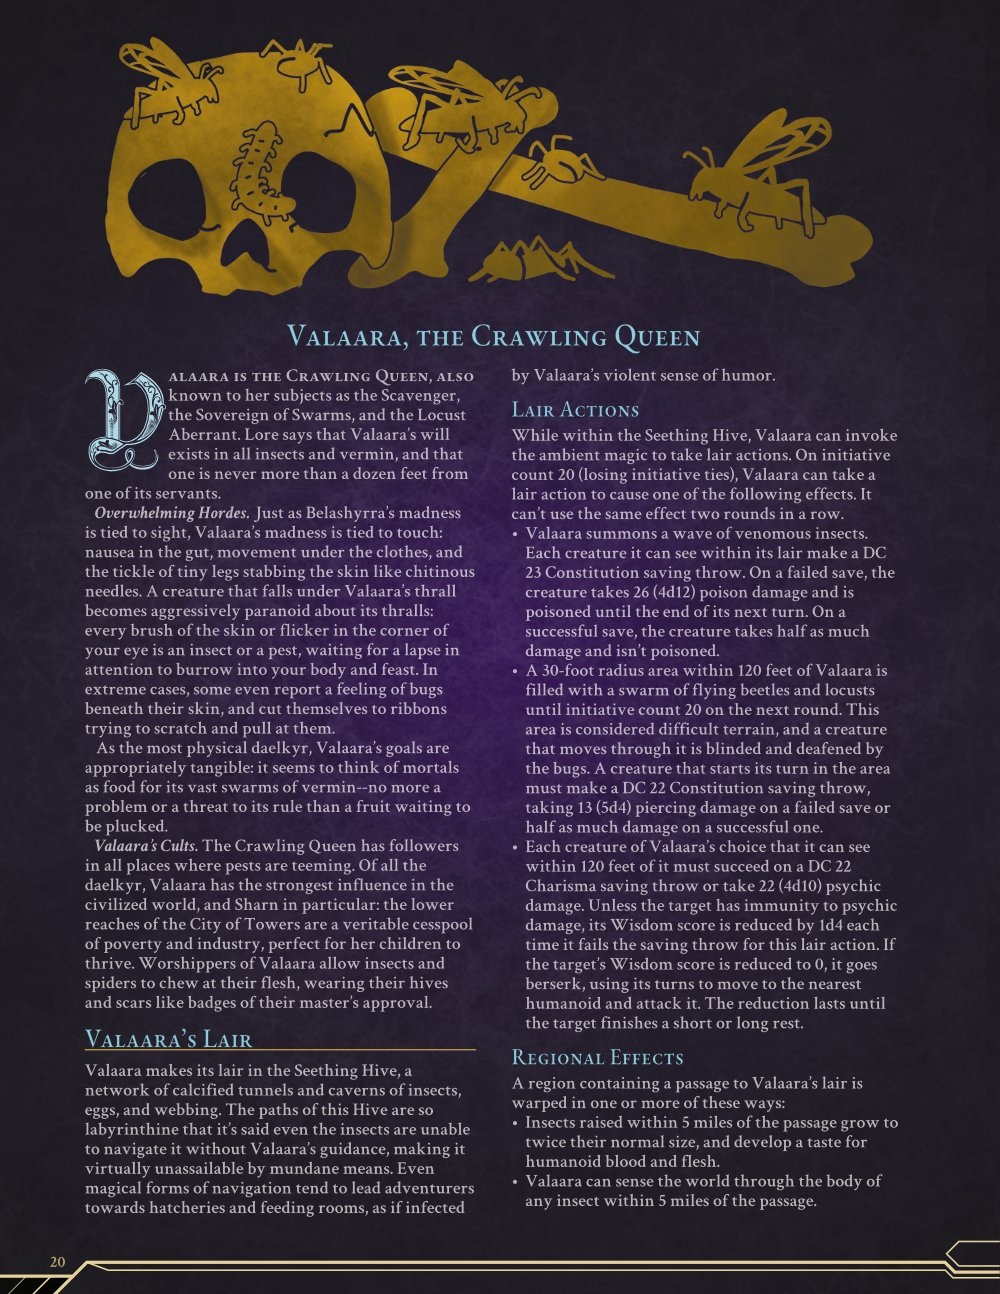 Valaara, the Crawling Queen, color layout